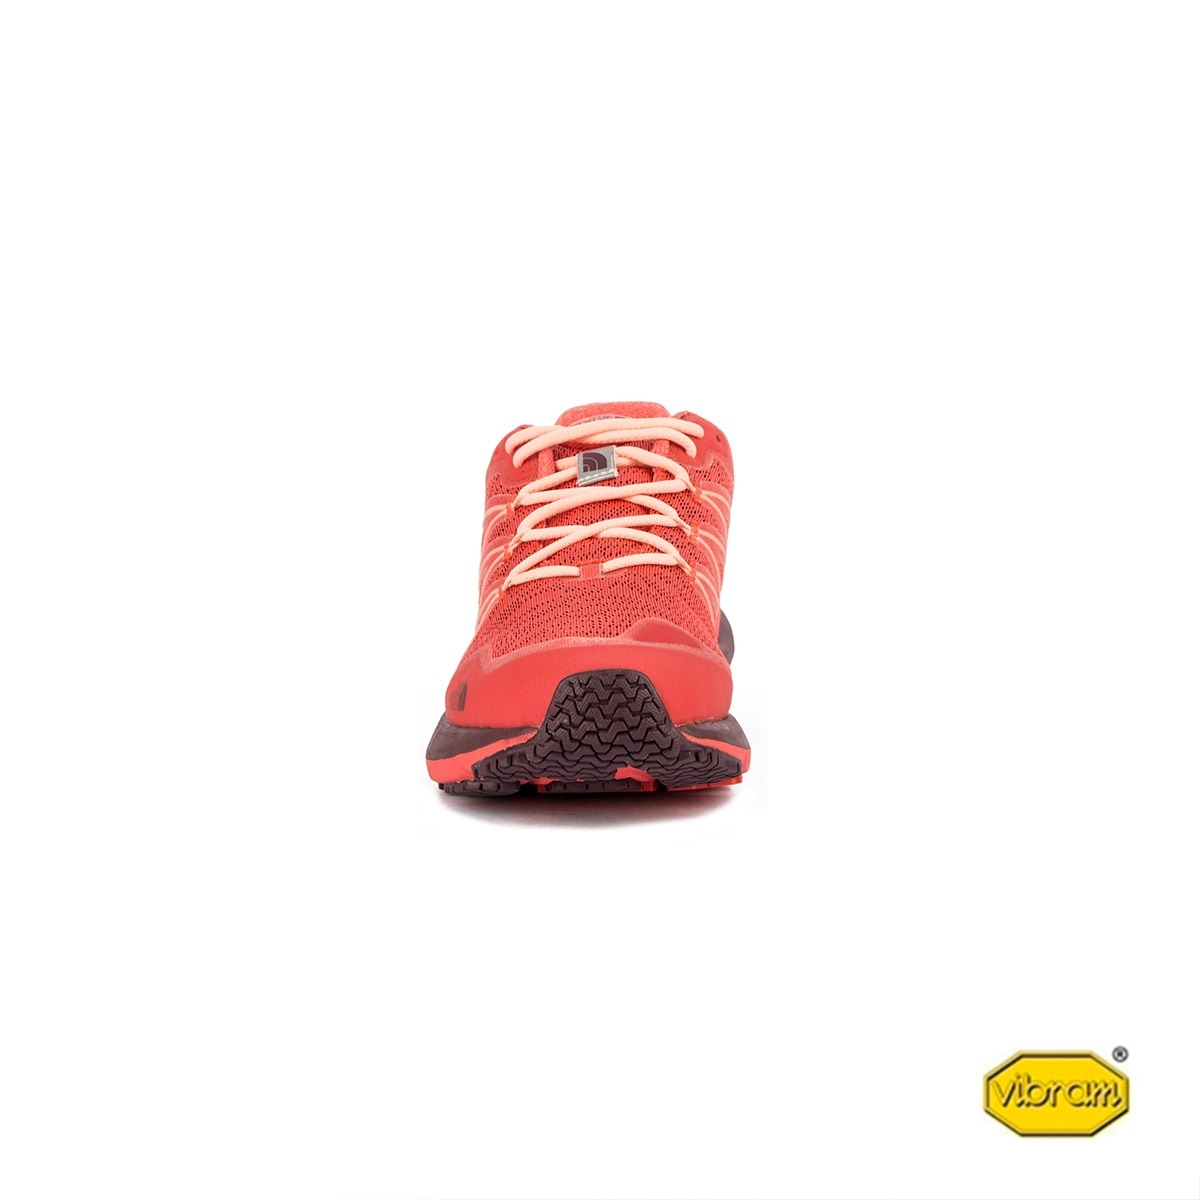 The North Face Ultra Cardiac II Goretex GTX Cayene Red Tropical Peach Mujer